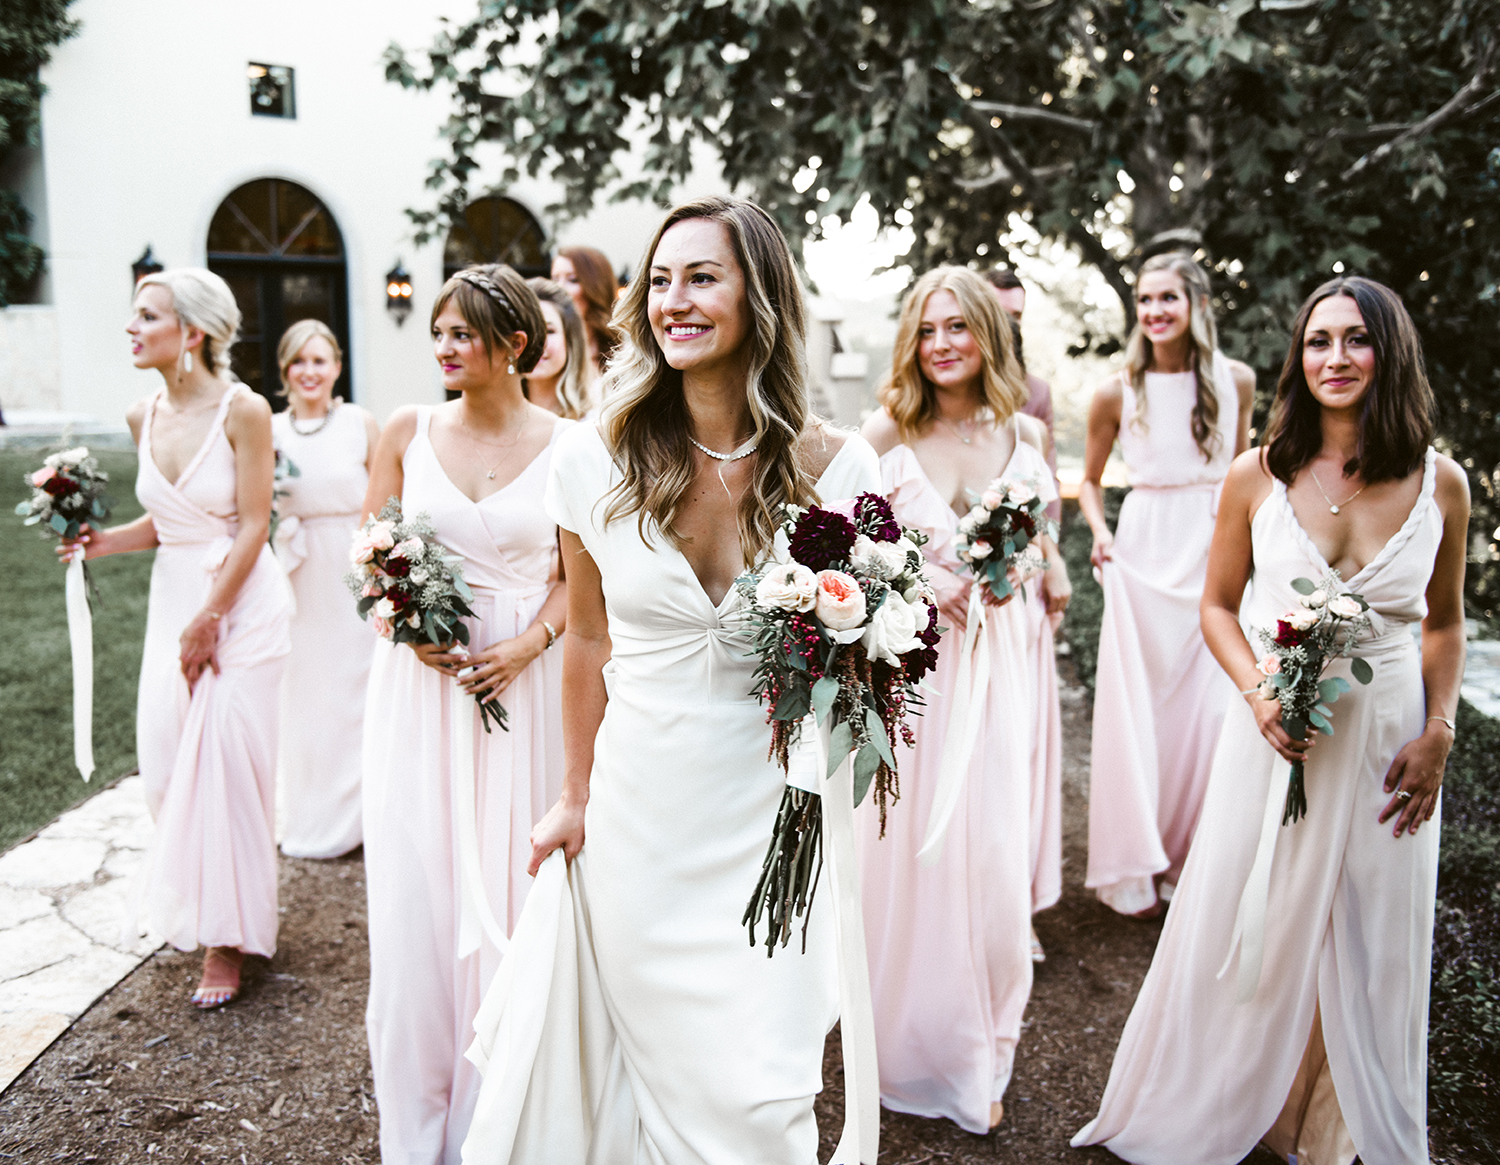 Our Wedding Day! - LivvyLand | Austin Fashion and Style Blogger